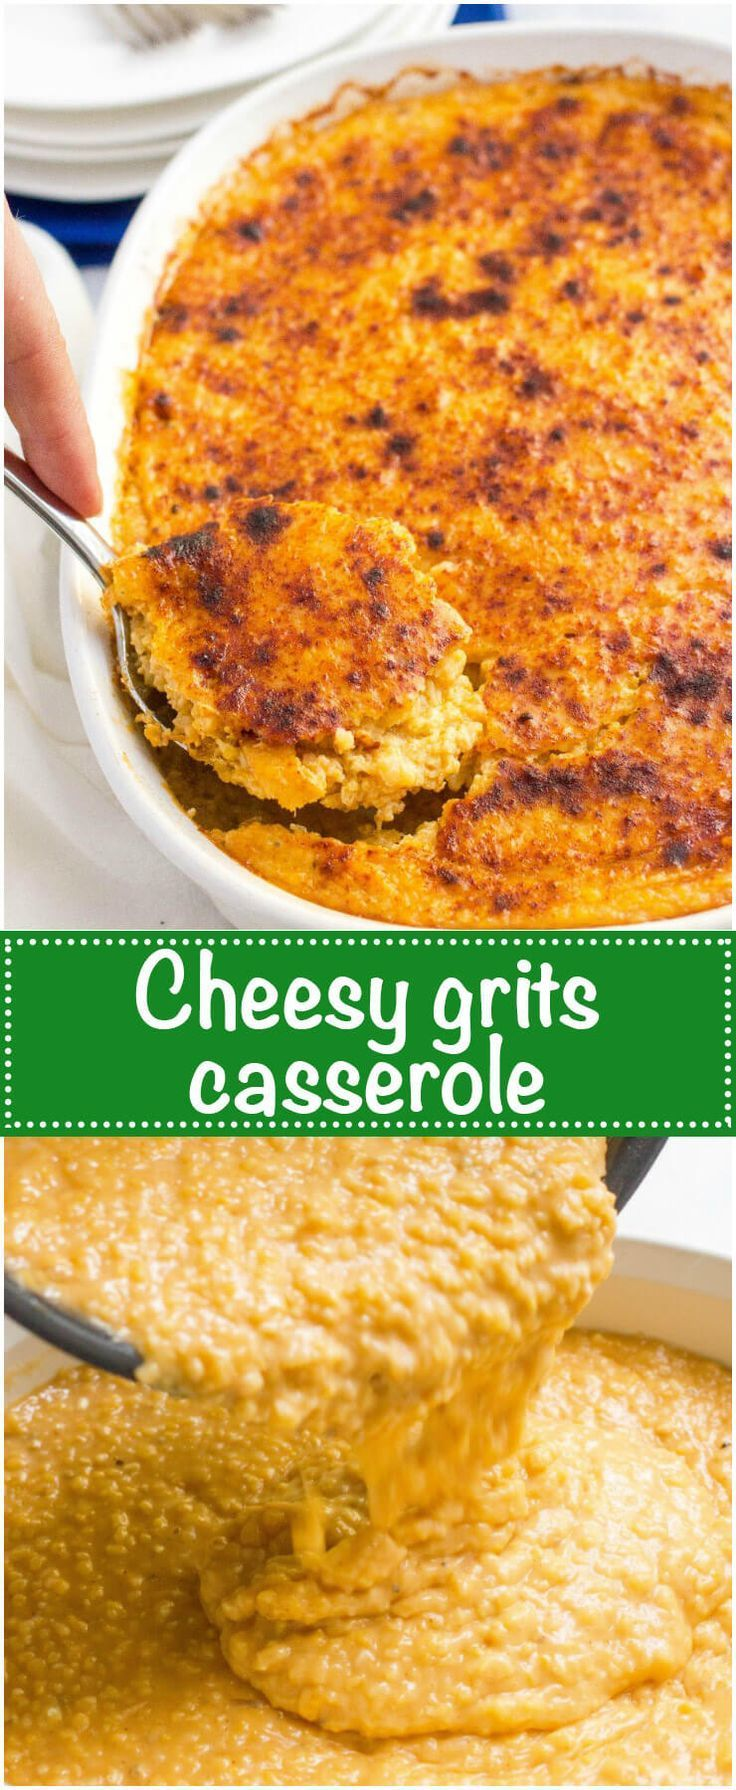 Overnight cheesy grits casserole - a great make ahead Southern breakfast or brunch recipe! | http://www.familyfoodonthetable.com